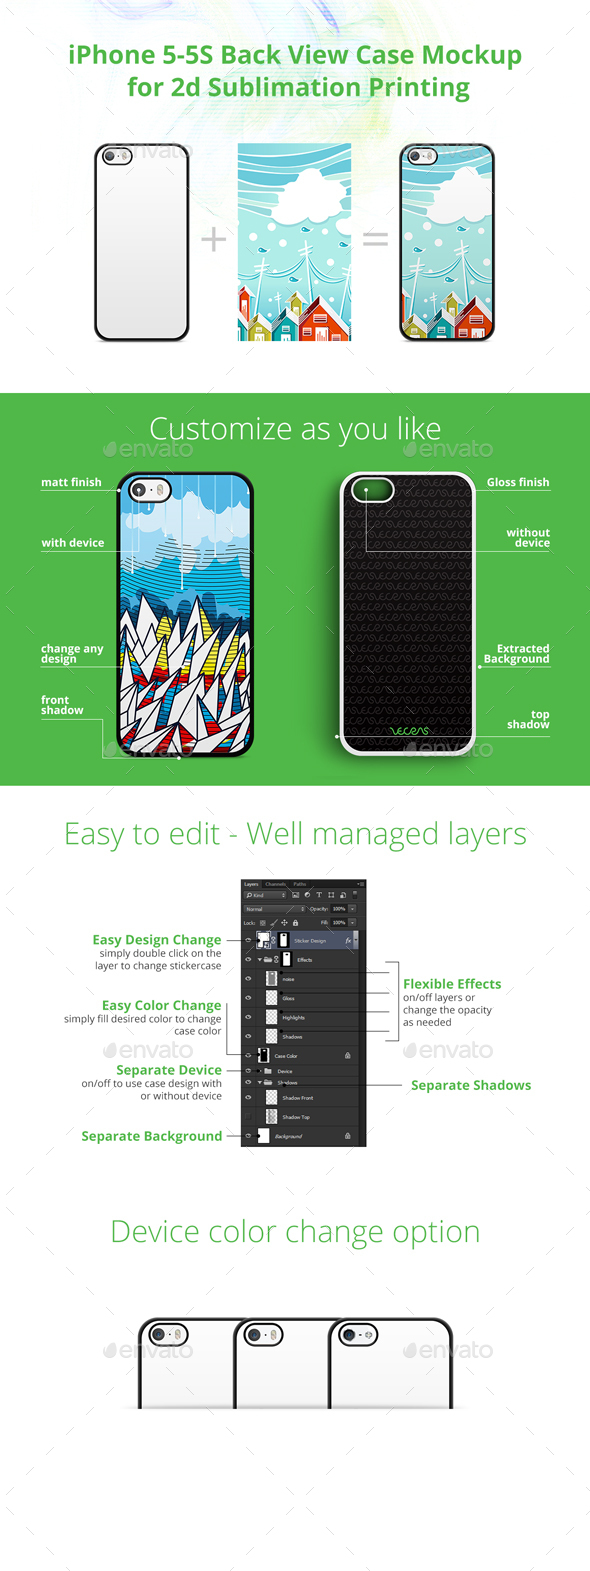 iPhone 5-5s Case Design Mockup for 2d Sublimation Printing - Back View